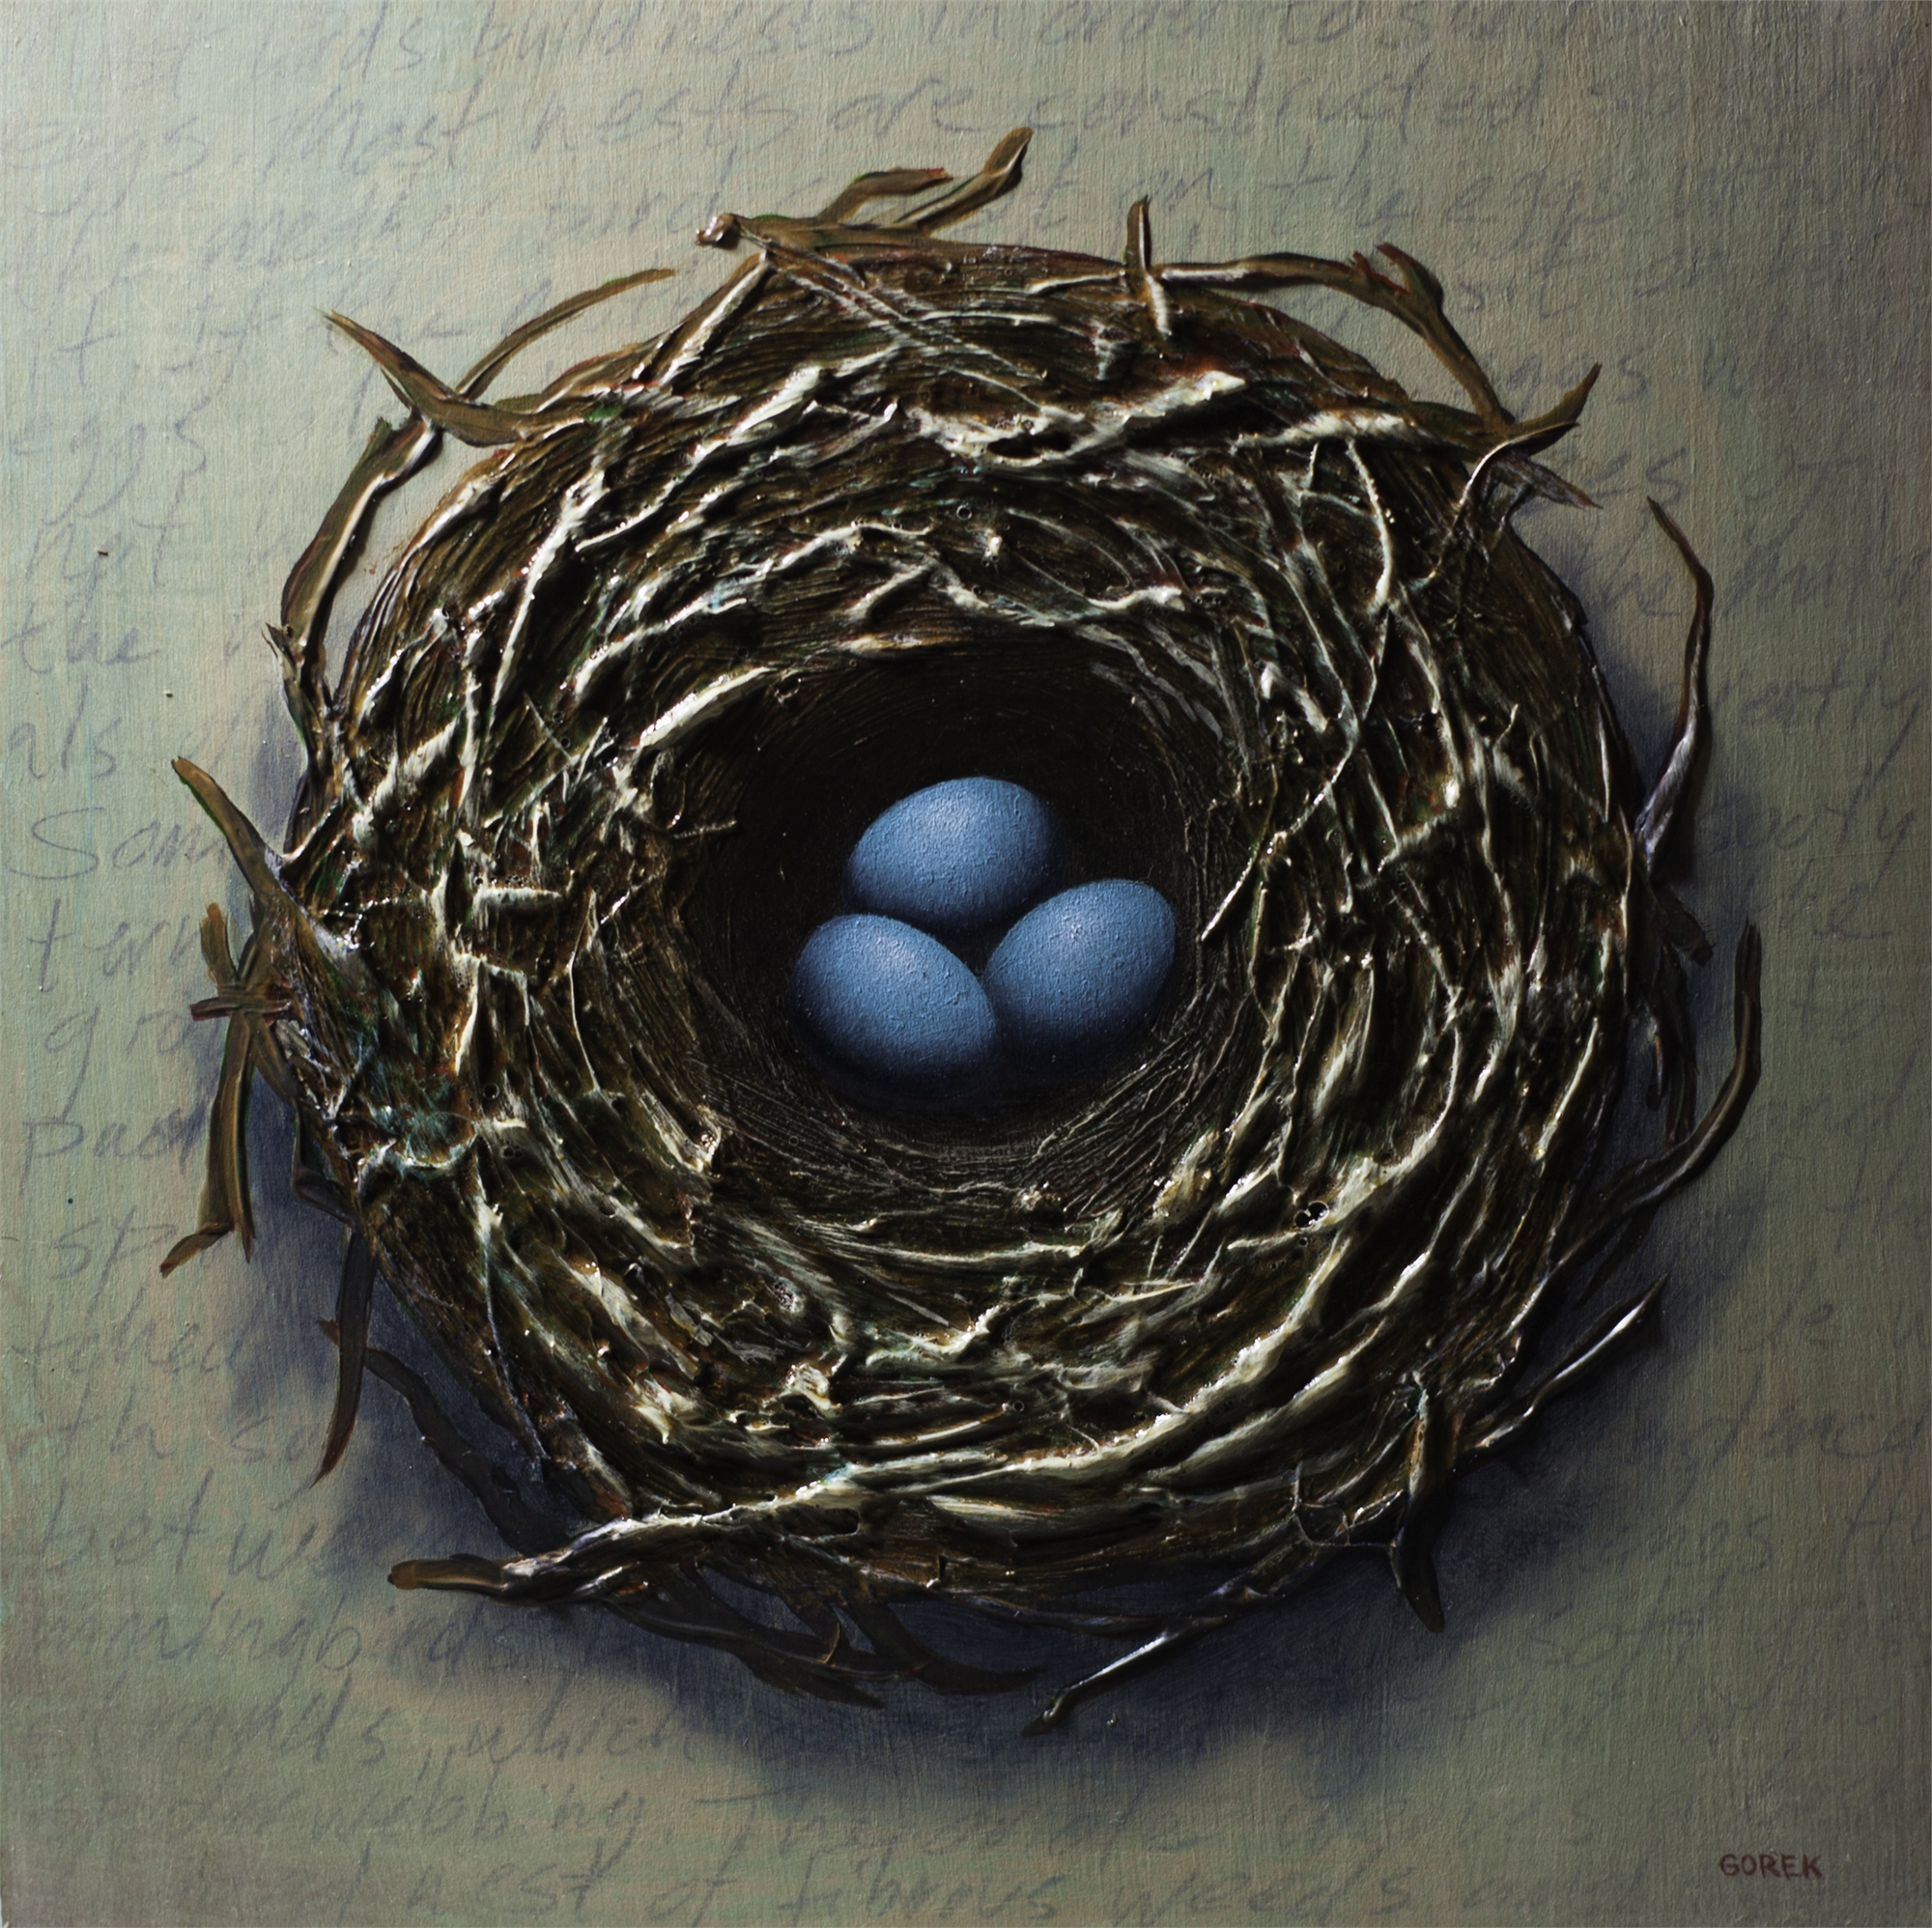 Bird's Nest, Three Eggs by Thane Gorek